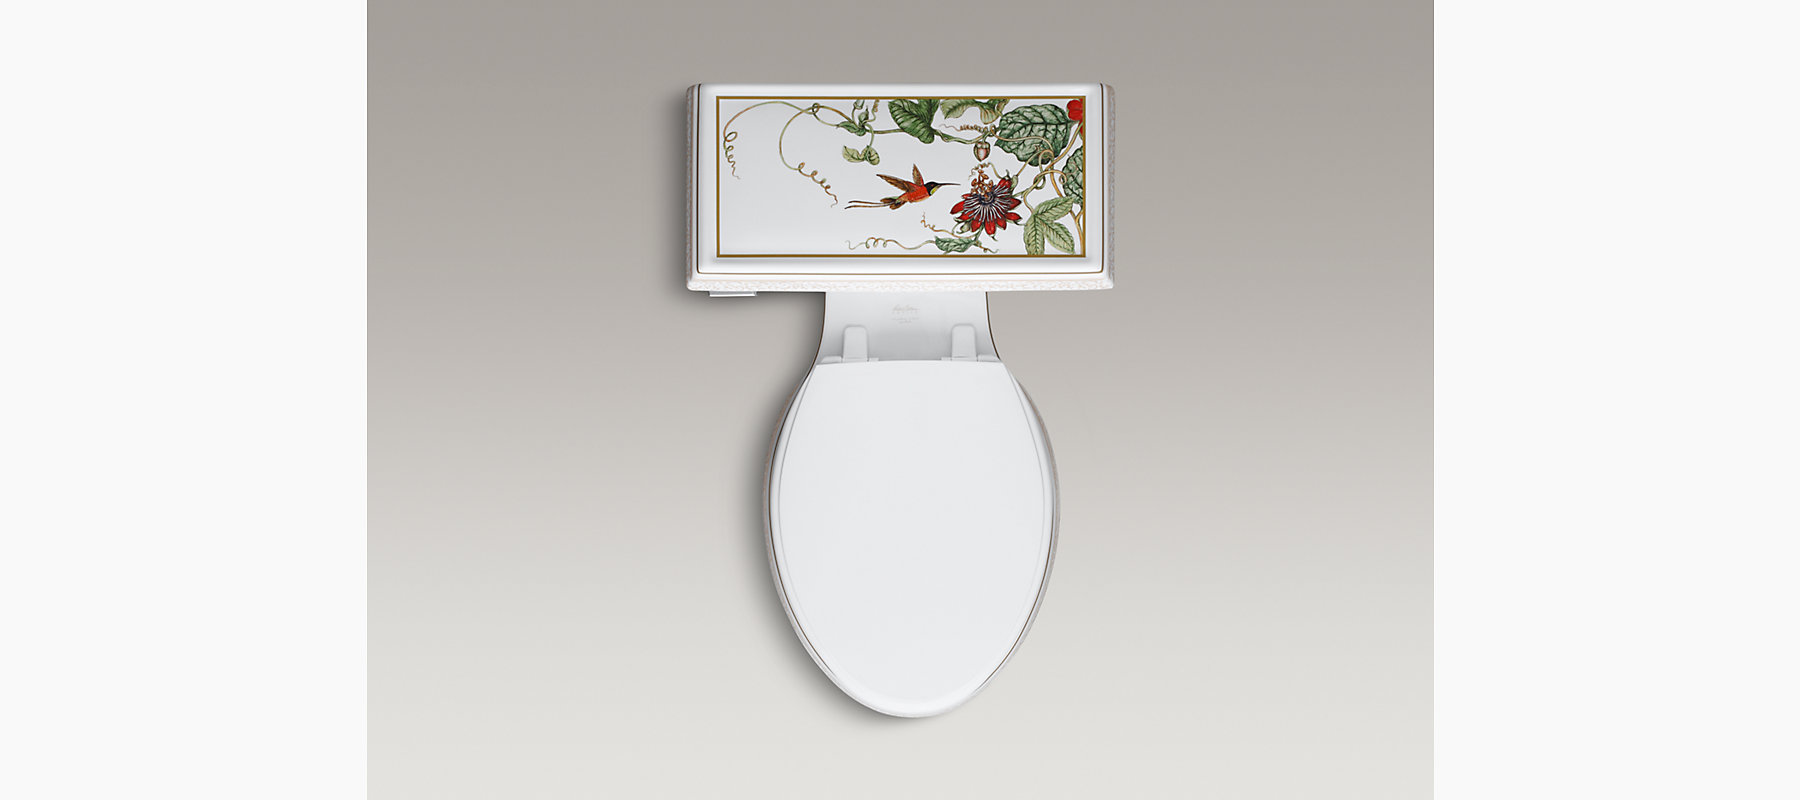 Kohler One Piece Toilet Flapper The Best 28 Images Of